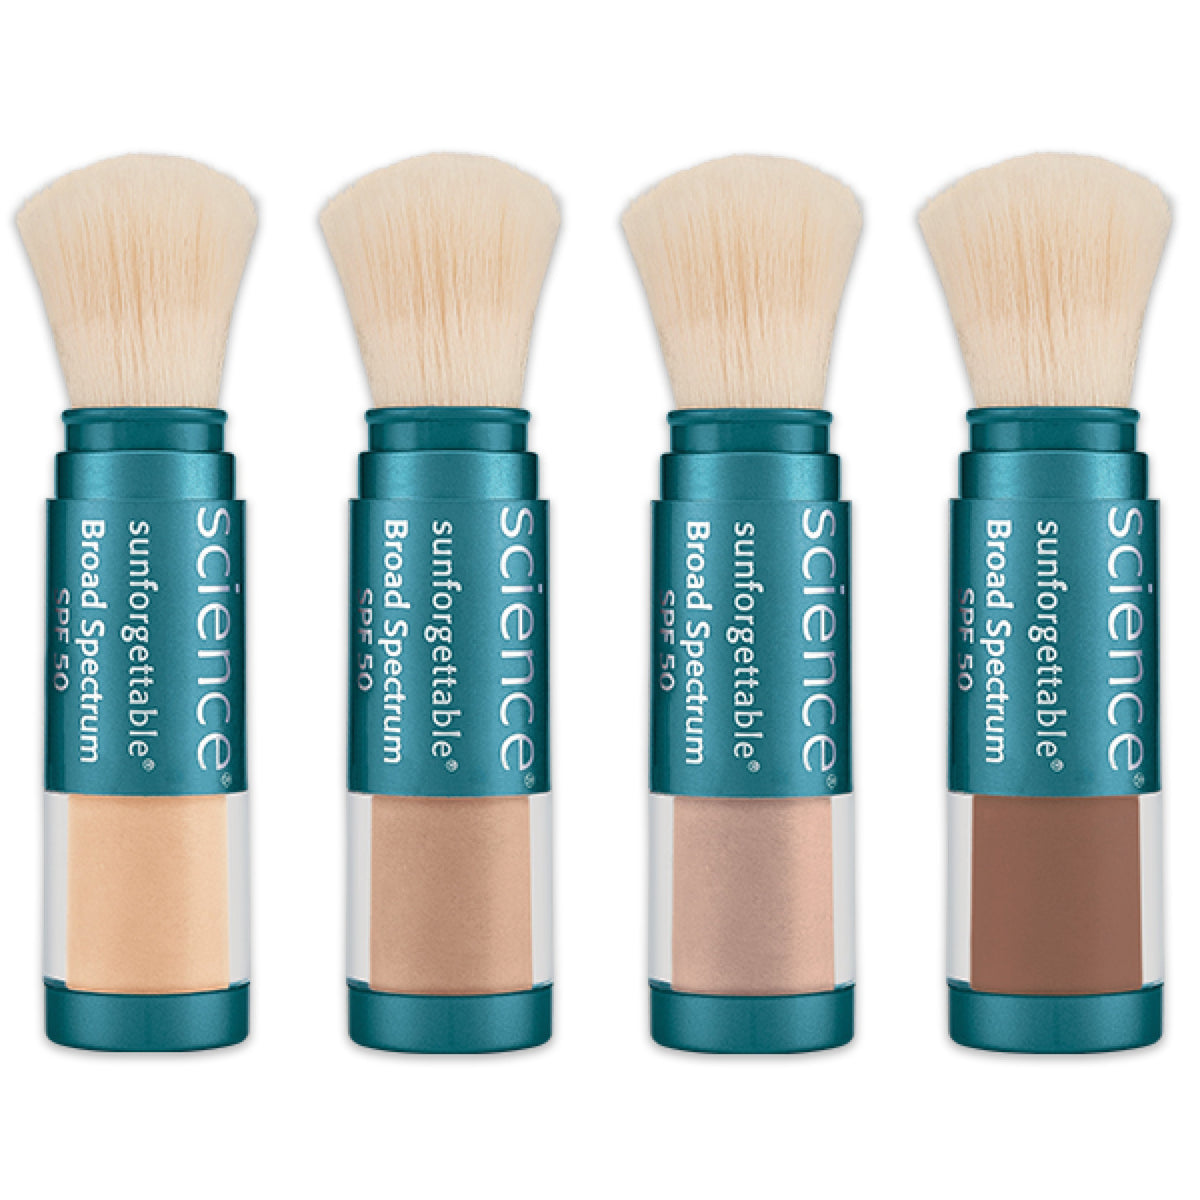 Colorescience Sunforgettable Mineral Sunscreen Brush SPF 50 ...